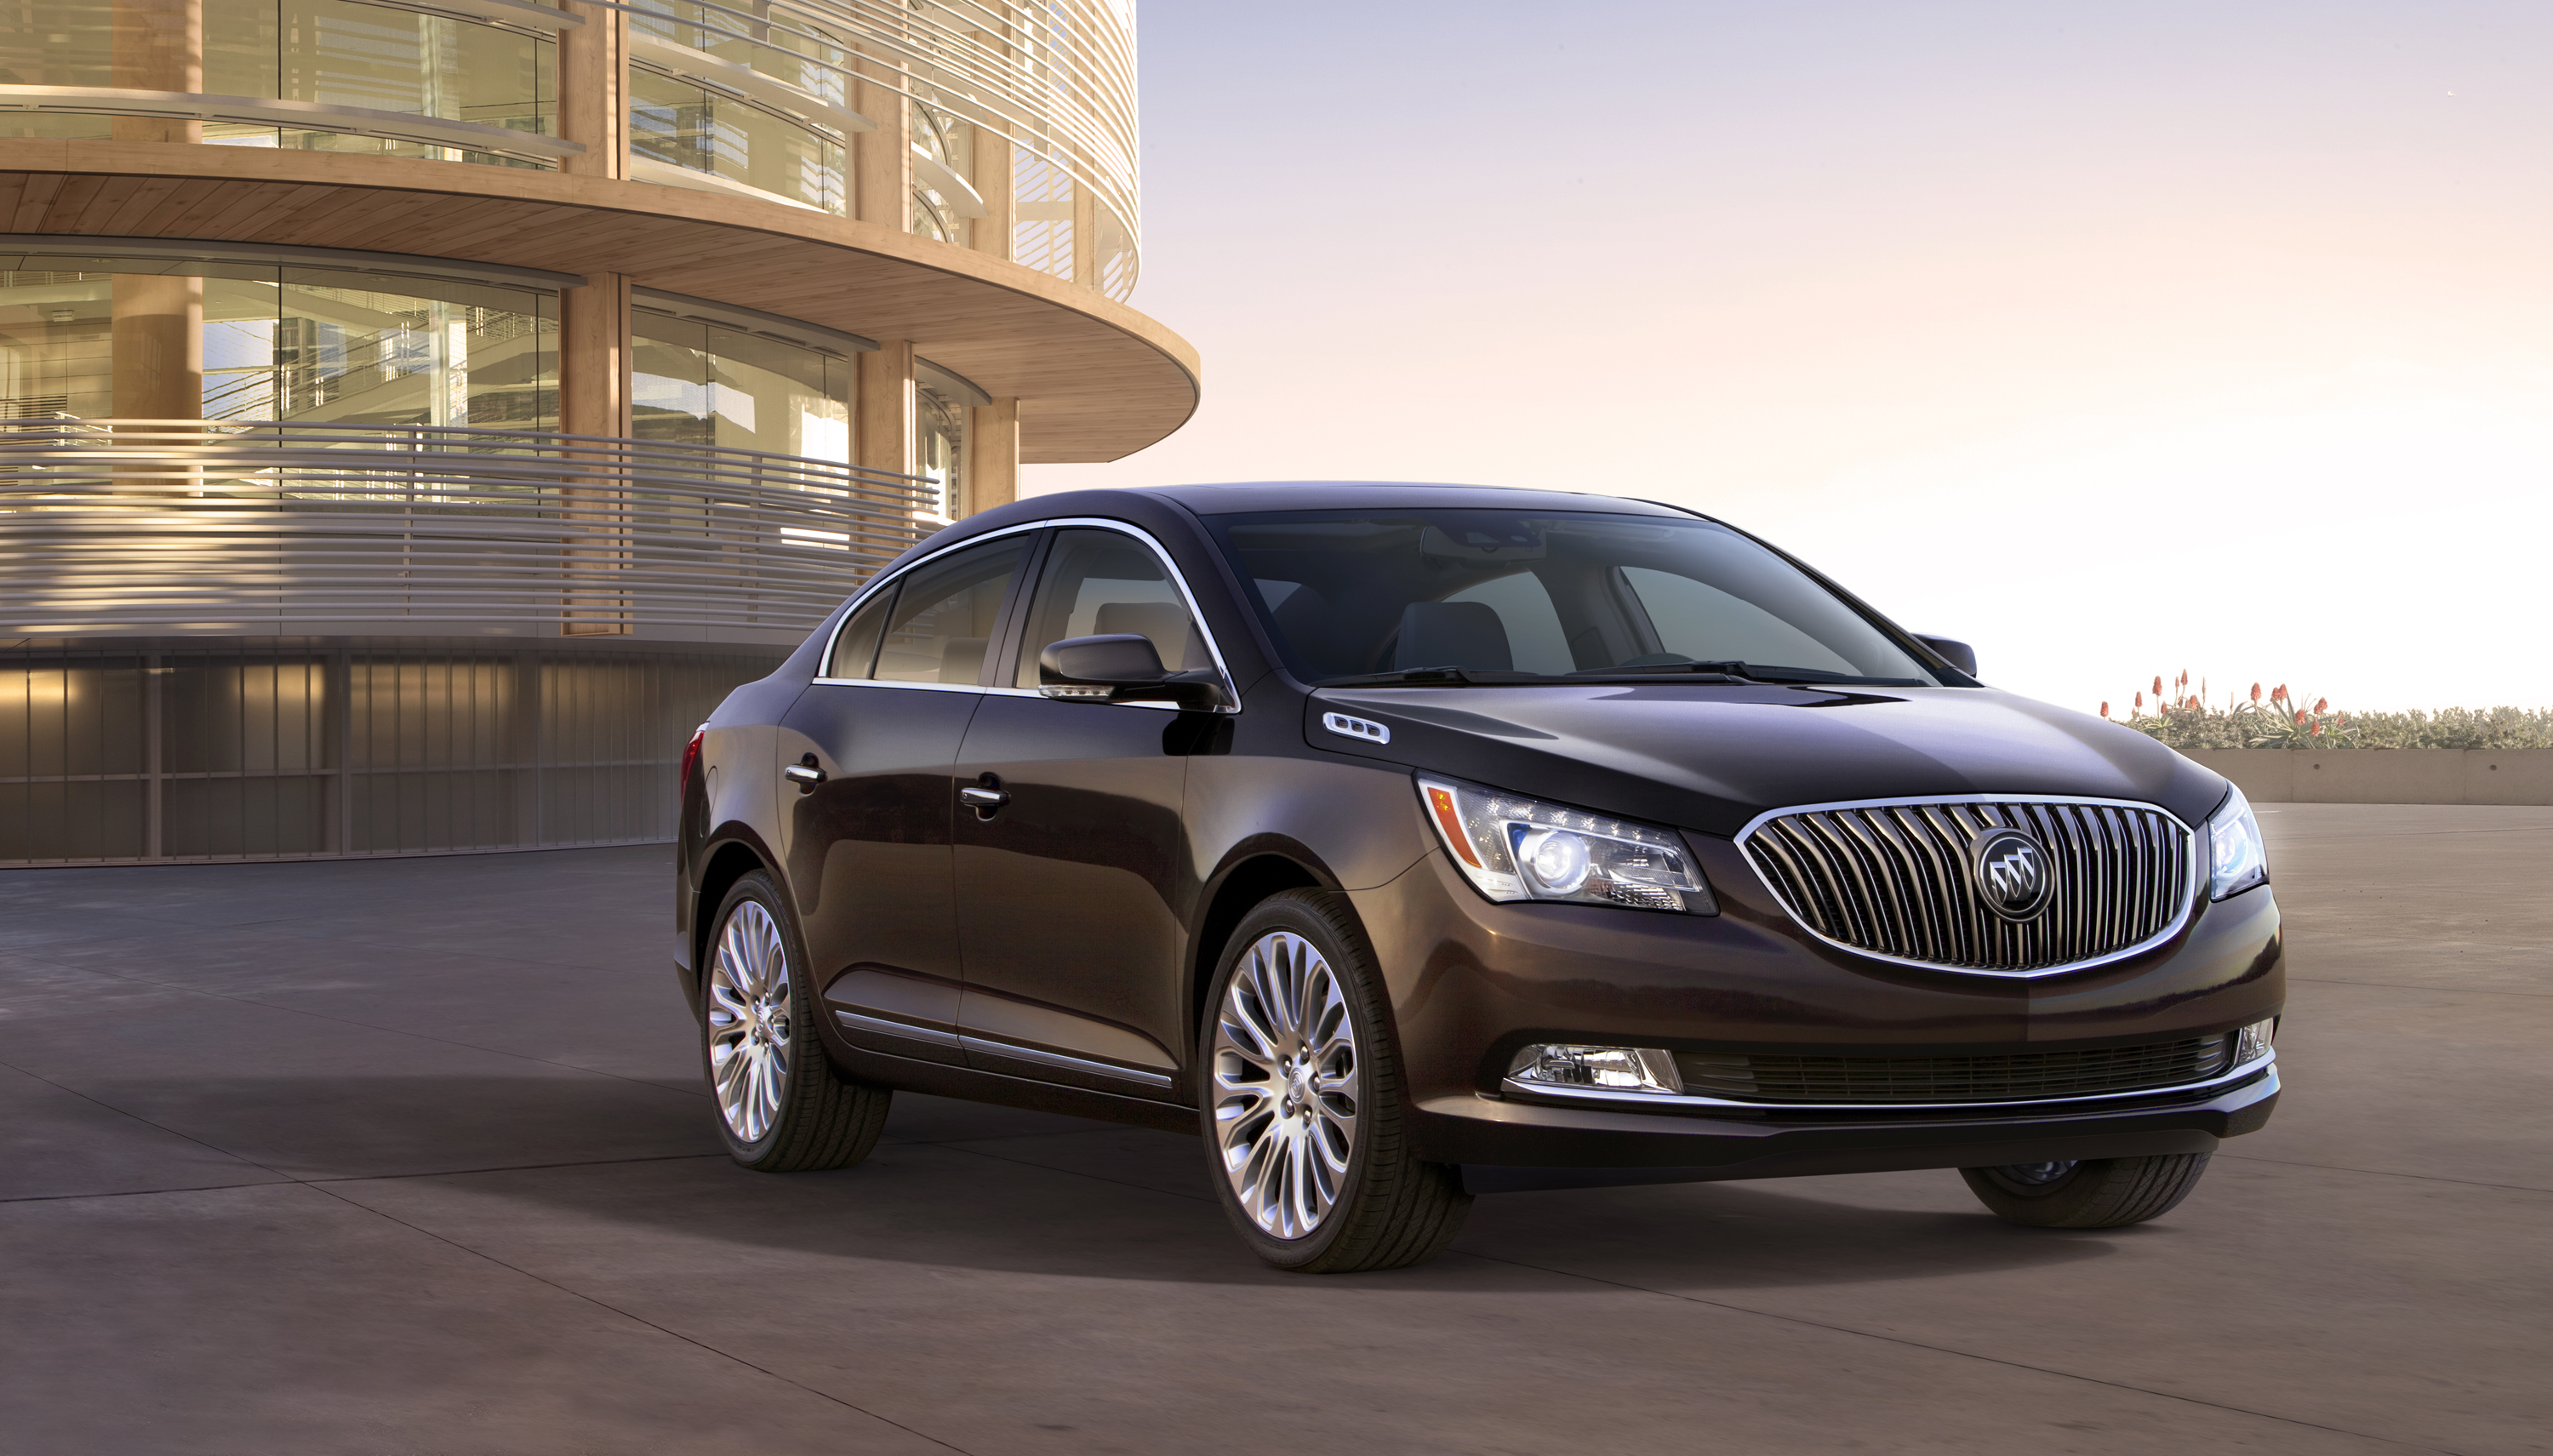 3000x1711 > Buick LaCrosse Wallpapers